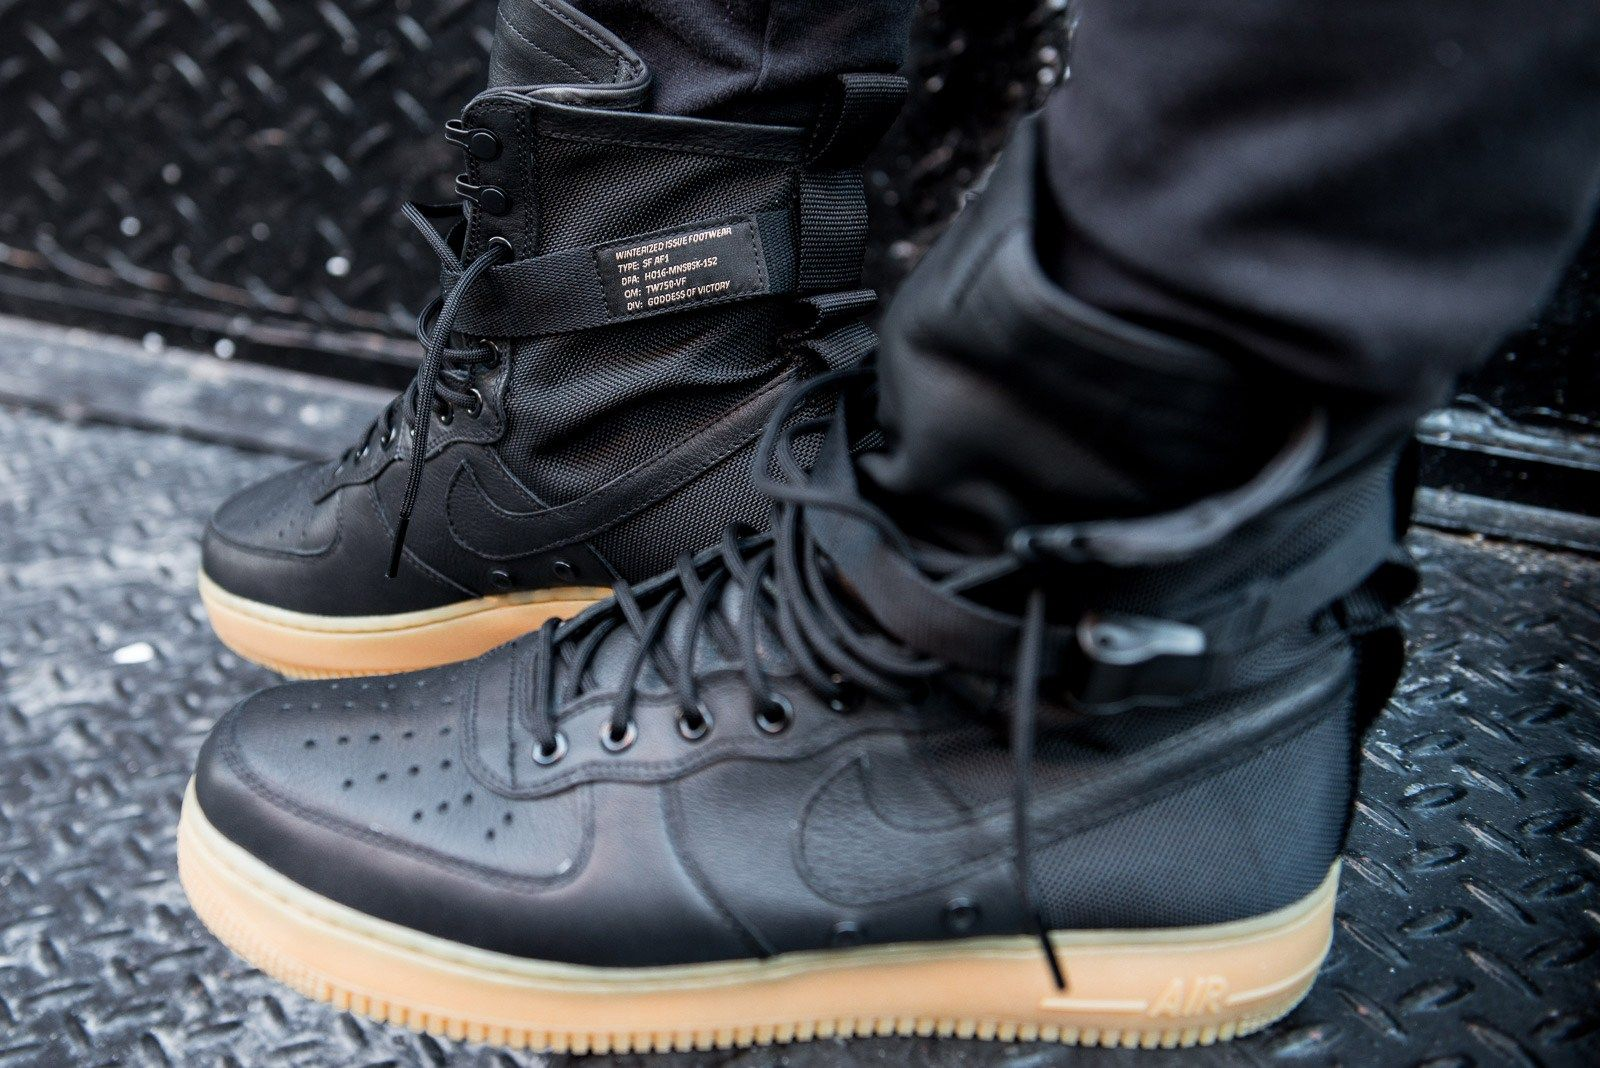 An #OnFeet Look at the Nike Special Field Air Force 1